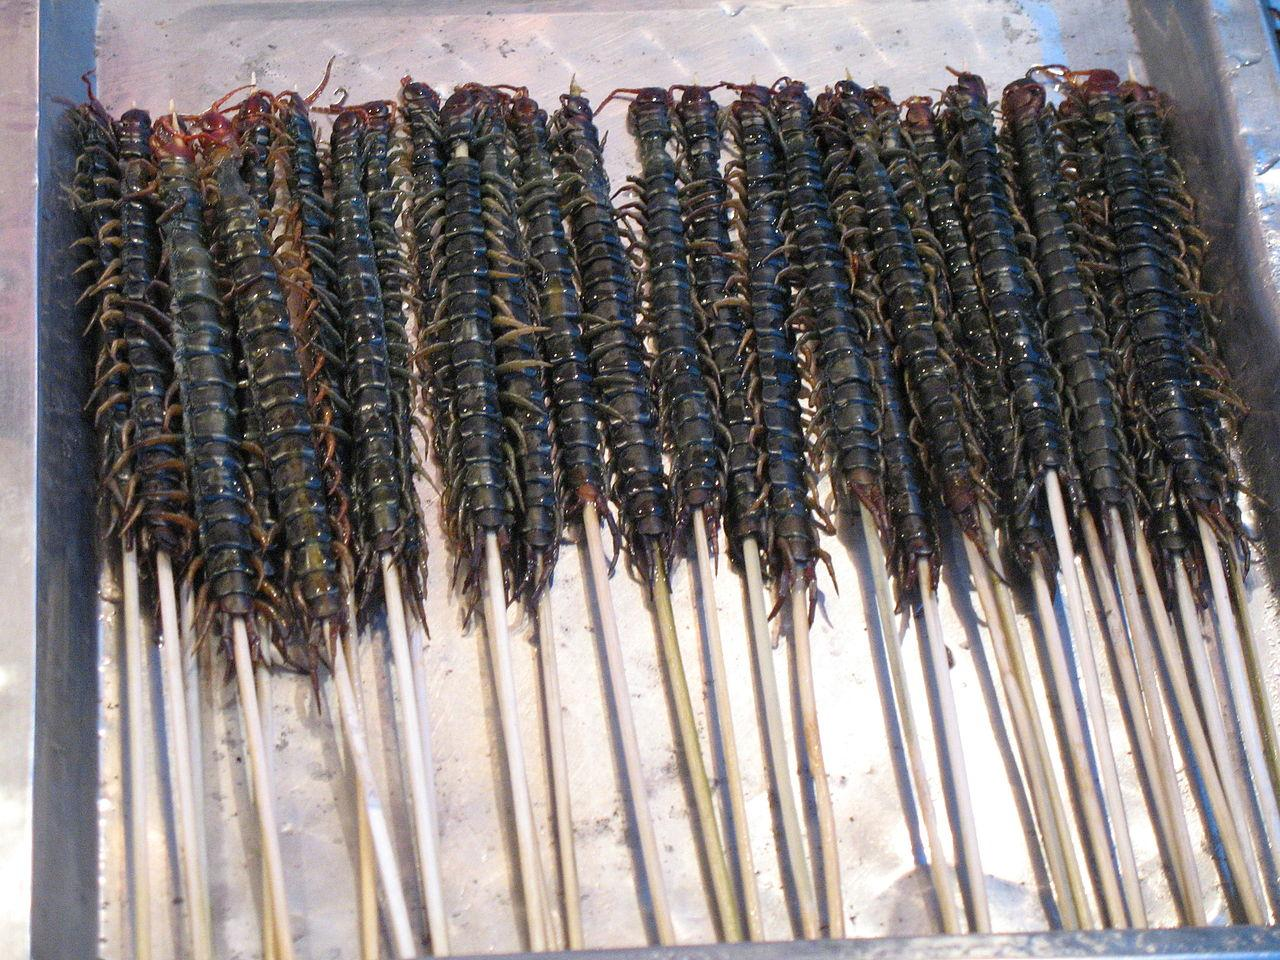 https://upload.wikimedia.org/wikipedia/commons/thumb/f/f8/Centipedes_as_street_food.jpg/1280px-Centipedes_as_street_food.jpg